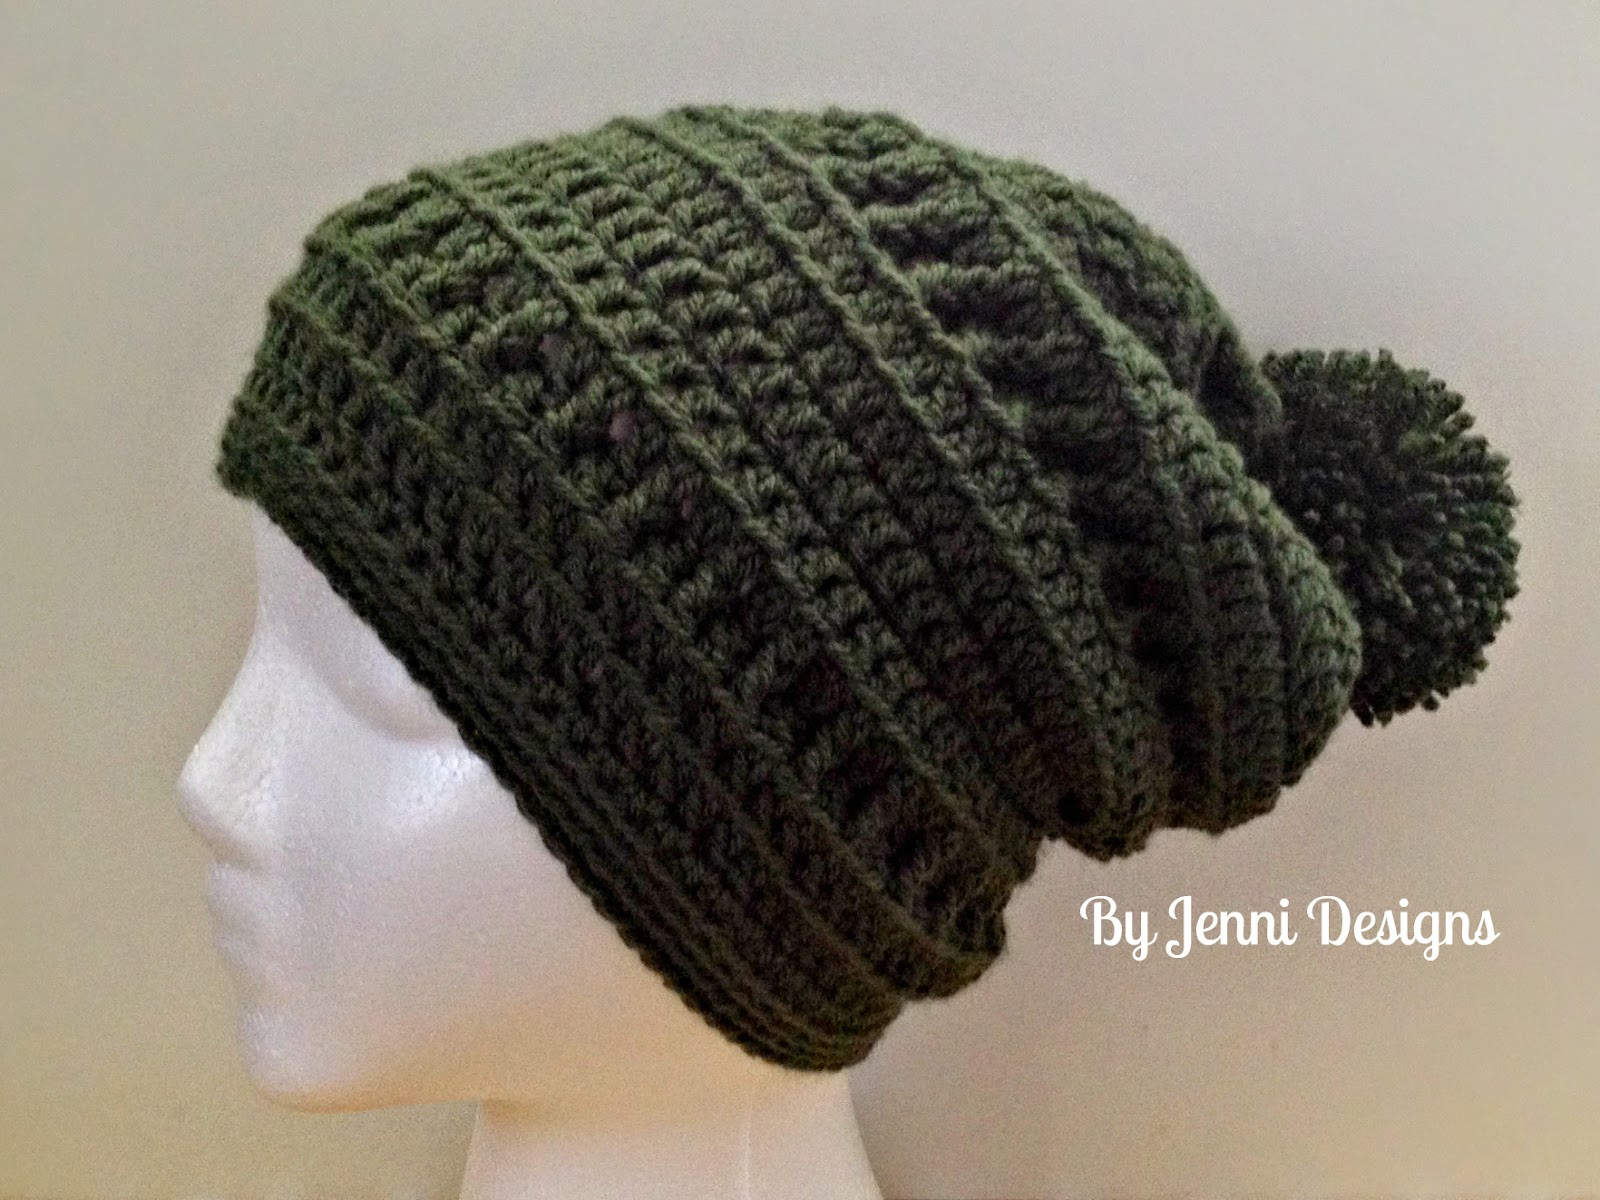 Inspirational Beanie Hats to Crochet Free Patterns Crochet Stitches for Hats Of Lovely 46 Models Crochet Stitches for Hats